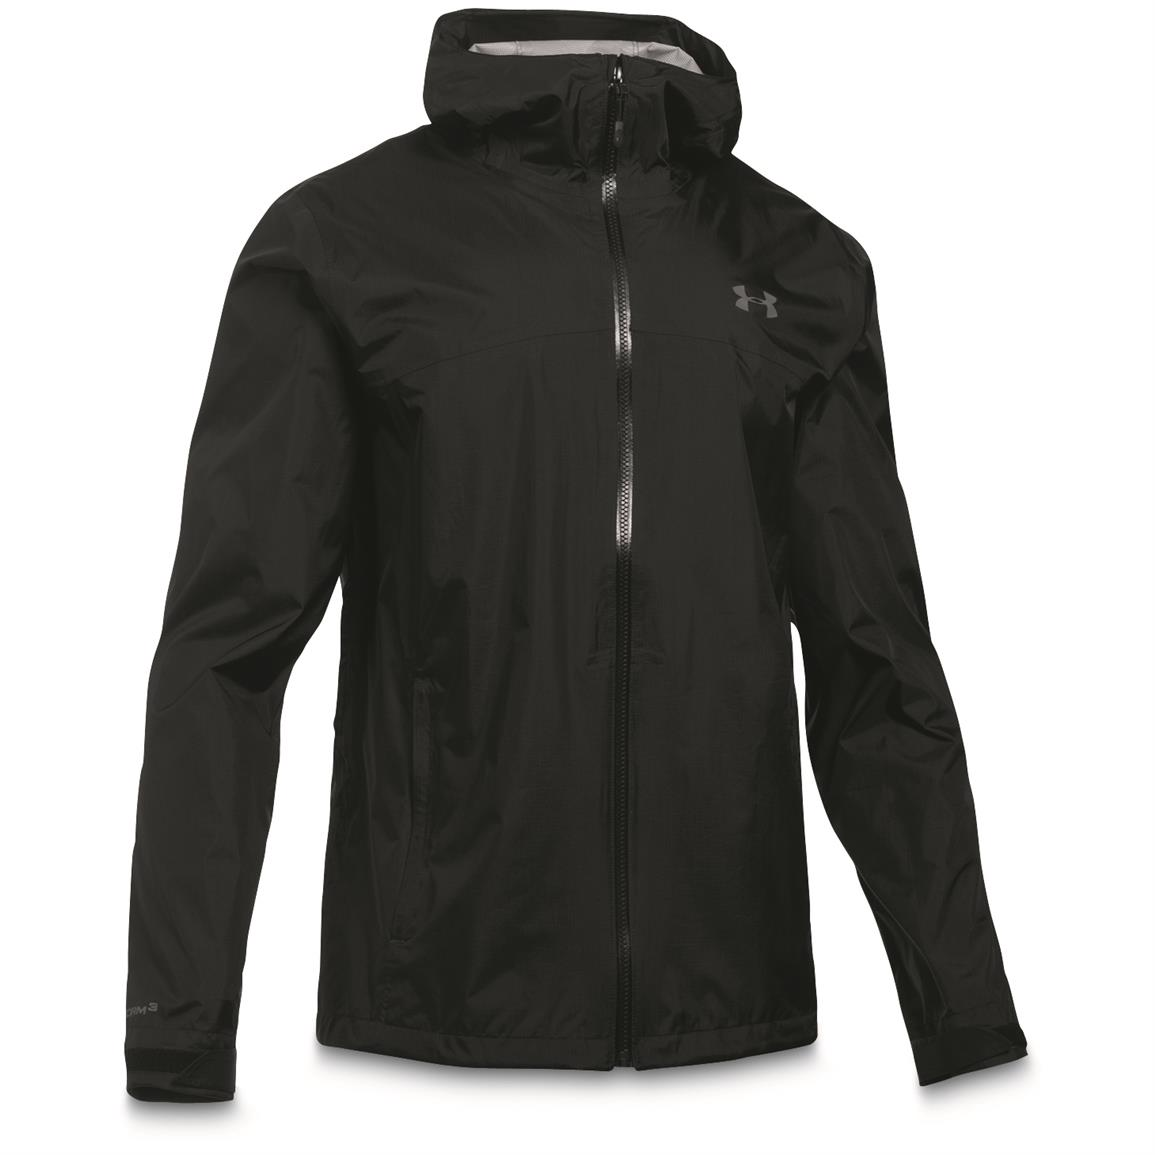 Under Armour Men's Waterproof/Windproof Surge Jacket, Black/Graphite